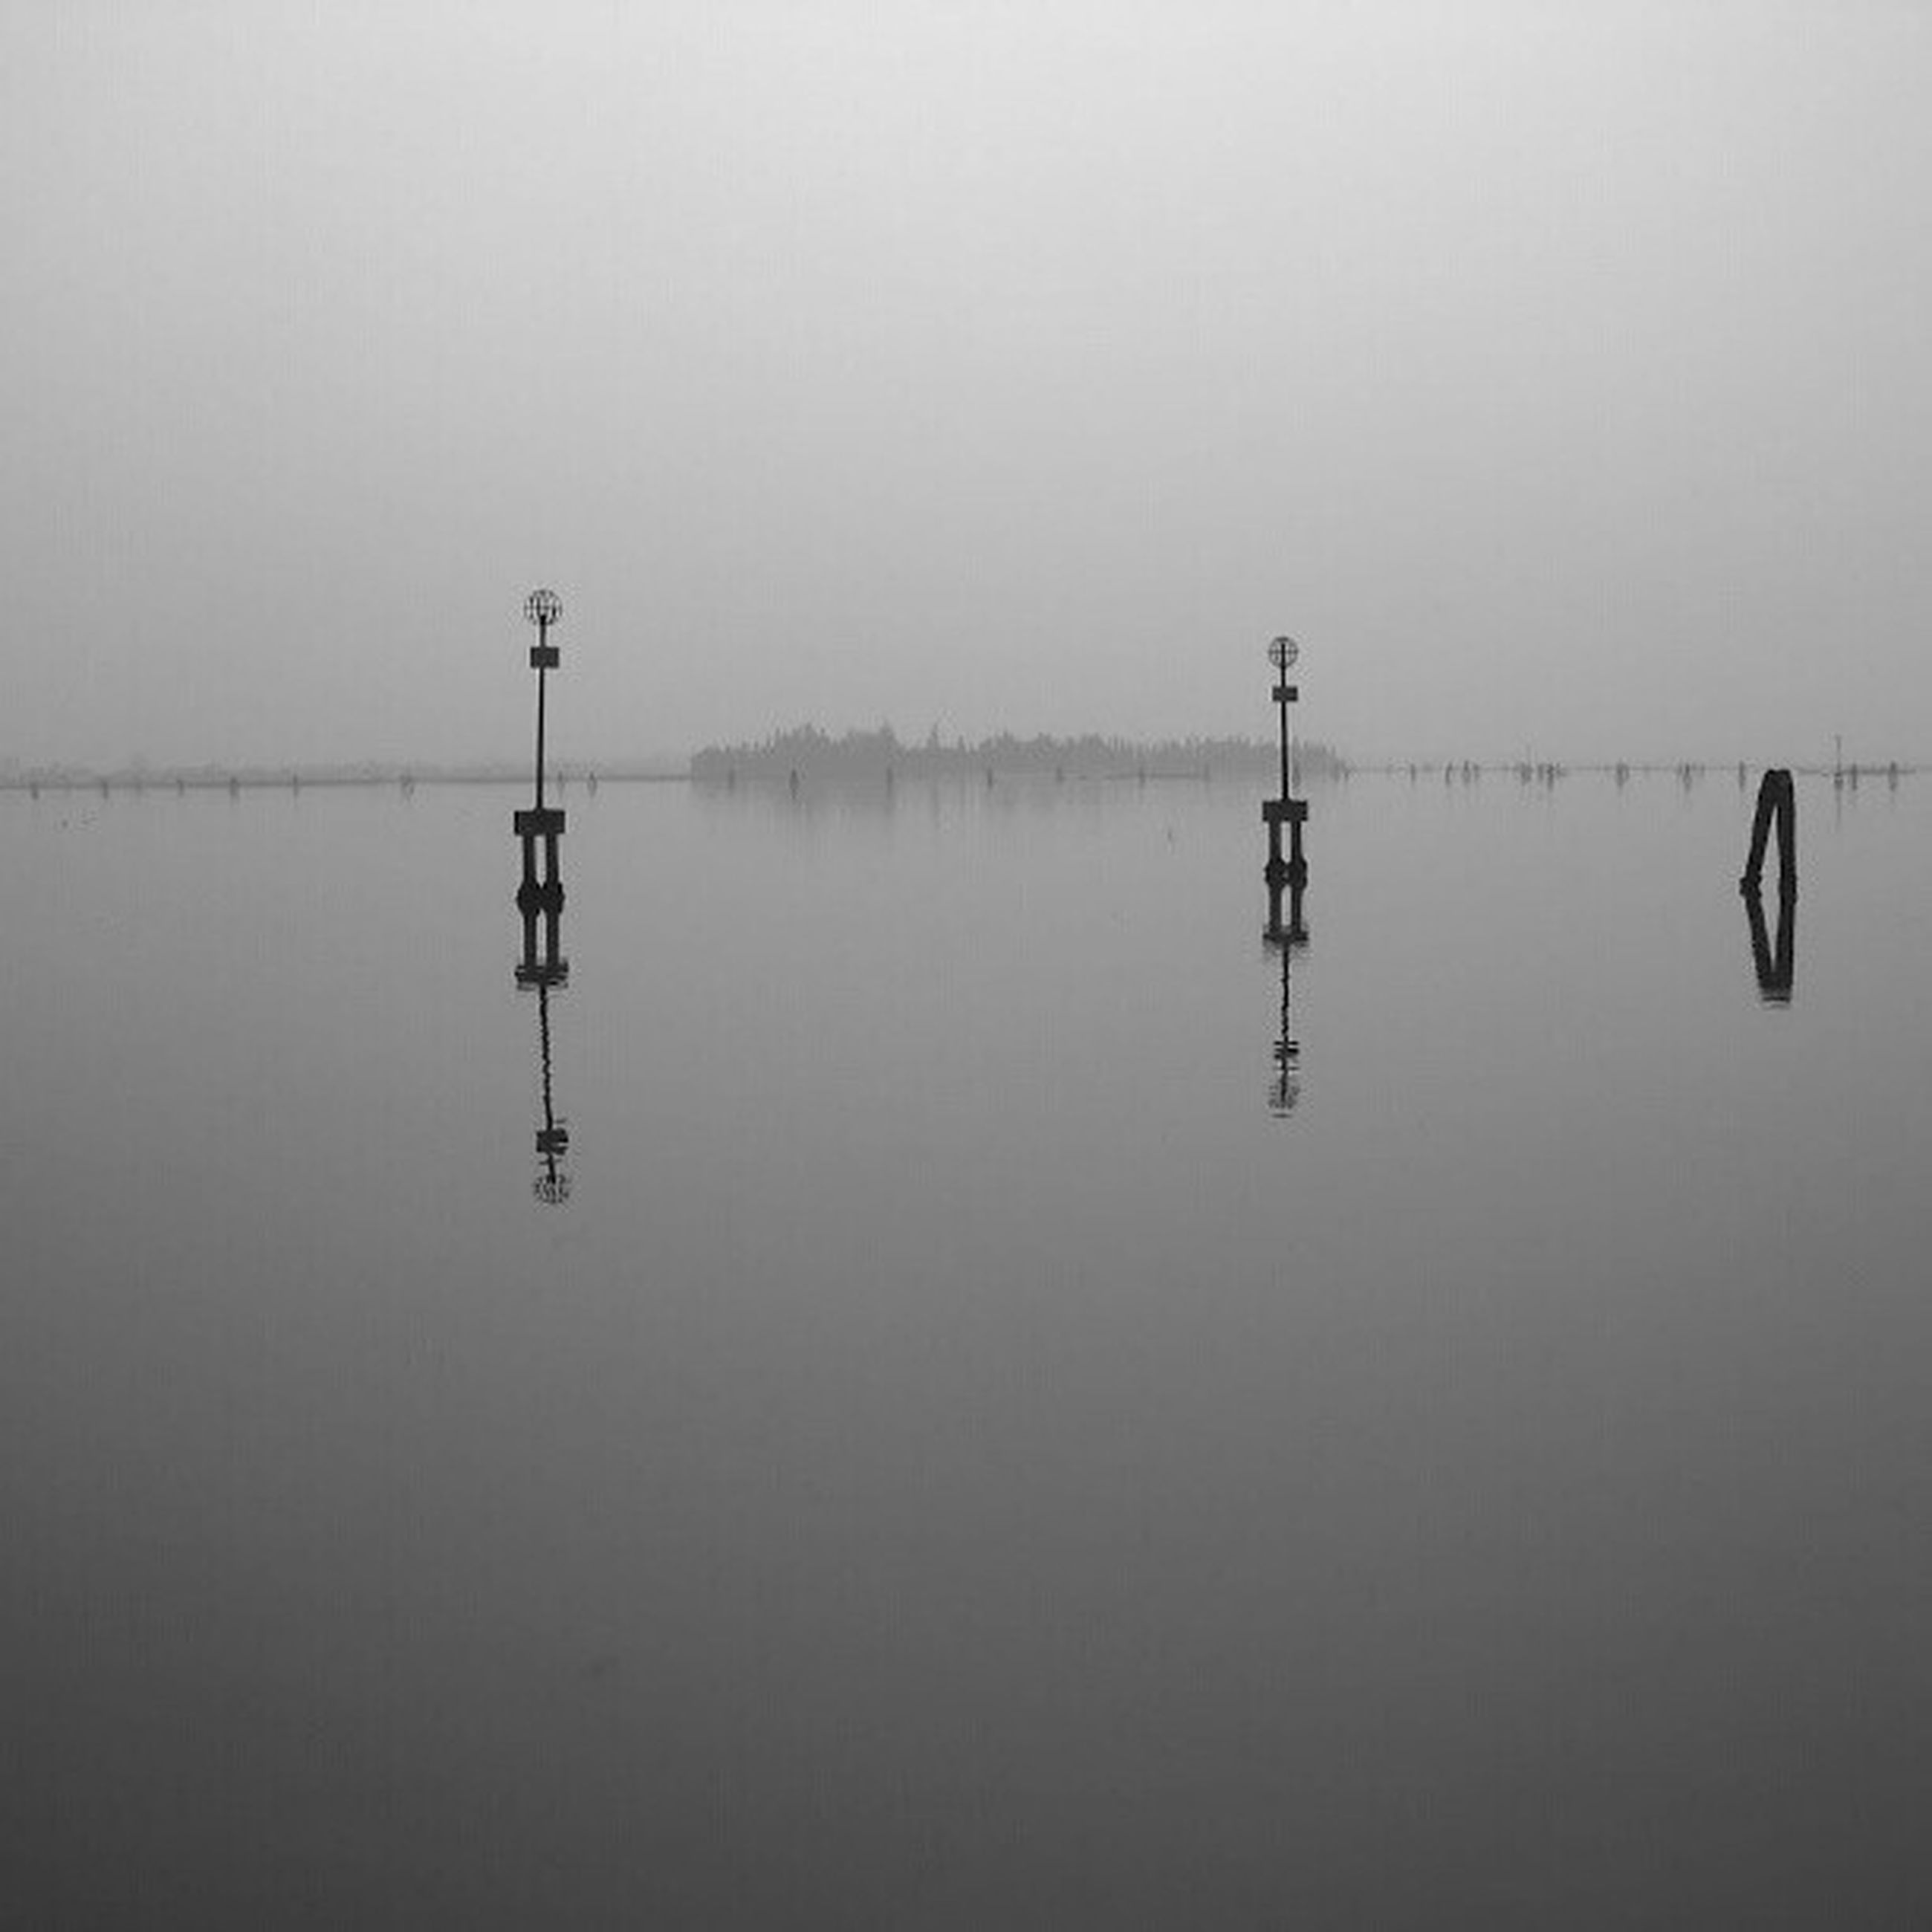 water, copy space, tranquility, reflection, clear sky, tranquil scene, lake, waterfront, scenics, nature, beauty in nature, sea, foggy, no people, calm, sky, outdoors, day, idyllic